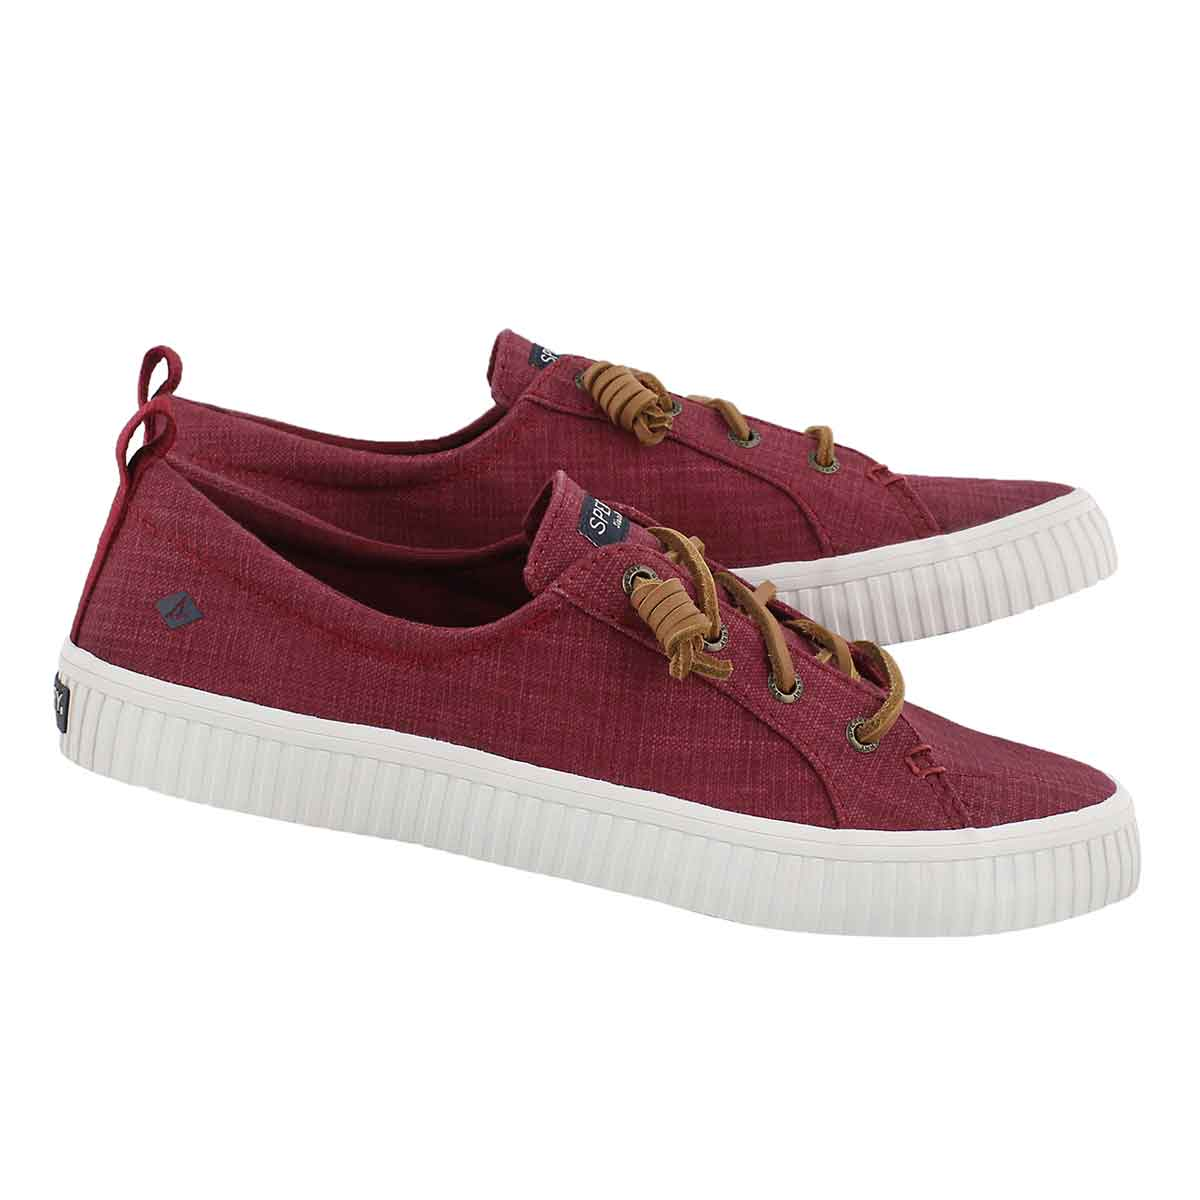 Lds Crest Vibe Creeper rswood snkr